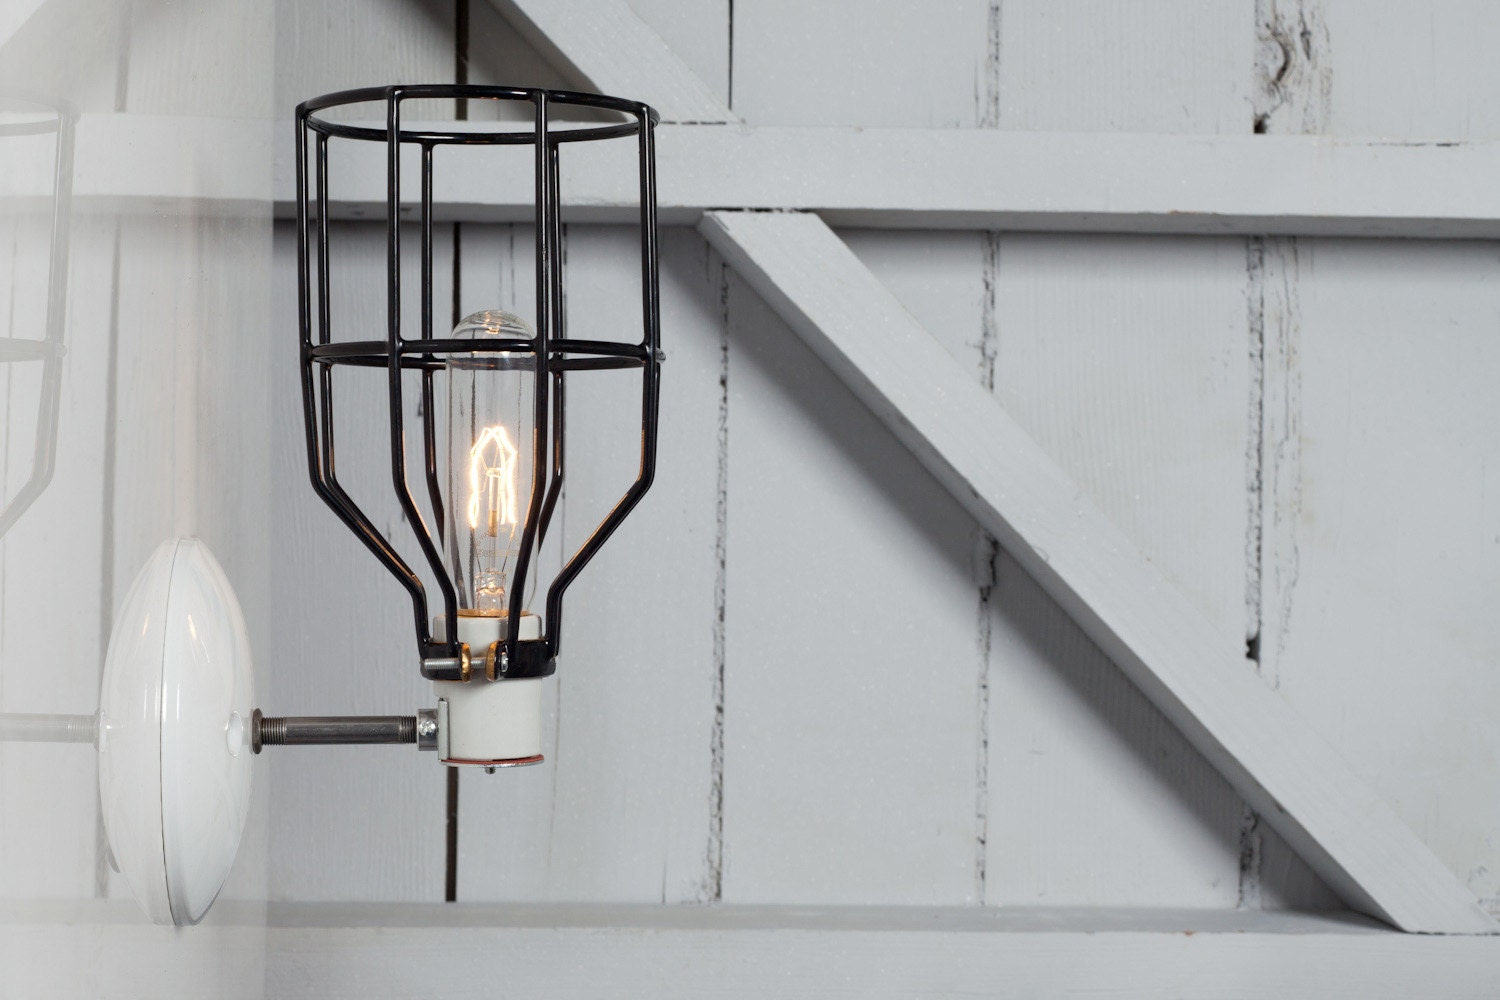 Wall Sconce With Cage : Industrial Wall Light Black Wire Cage Wall Sconce Light